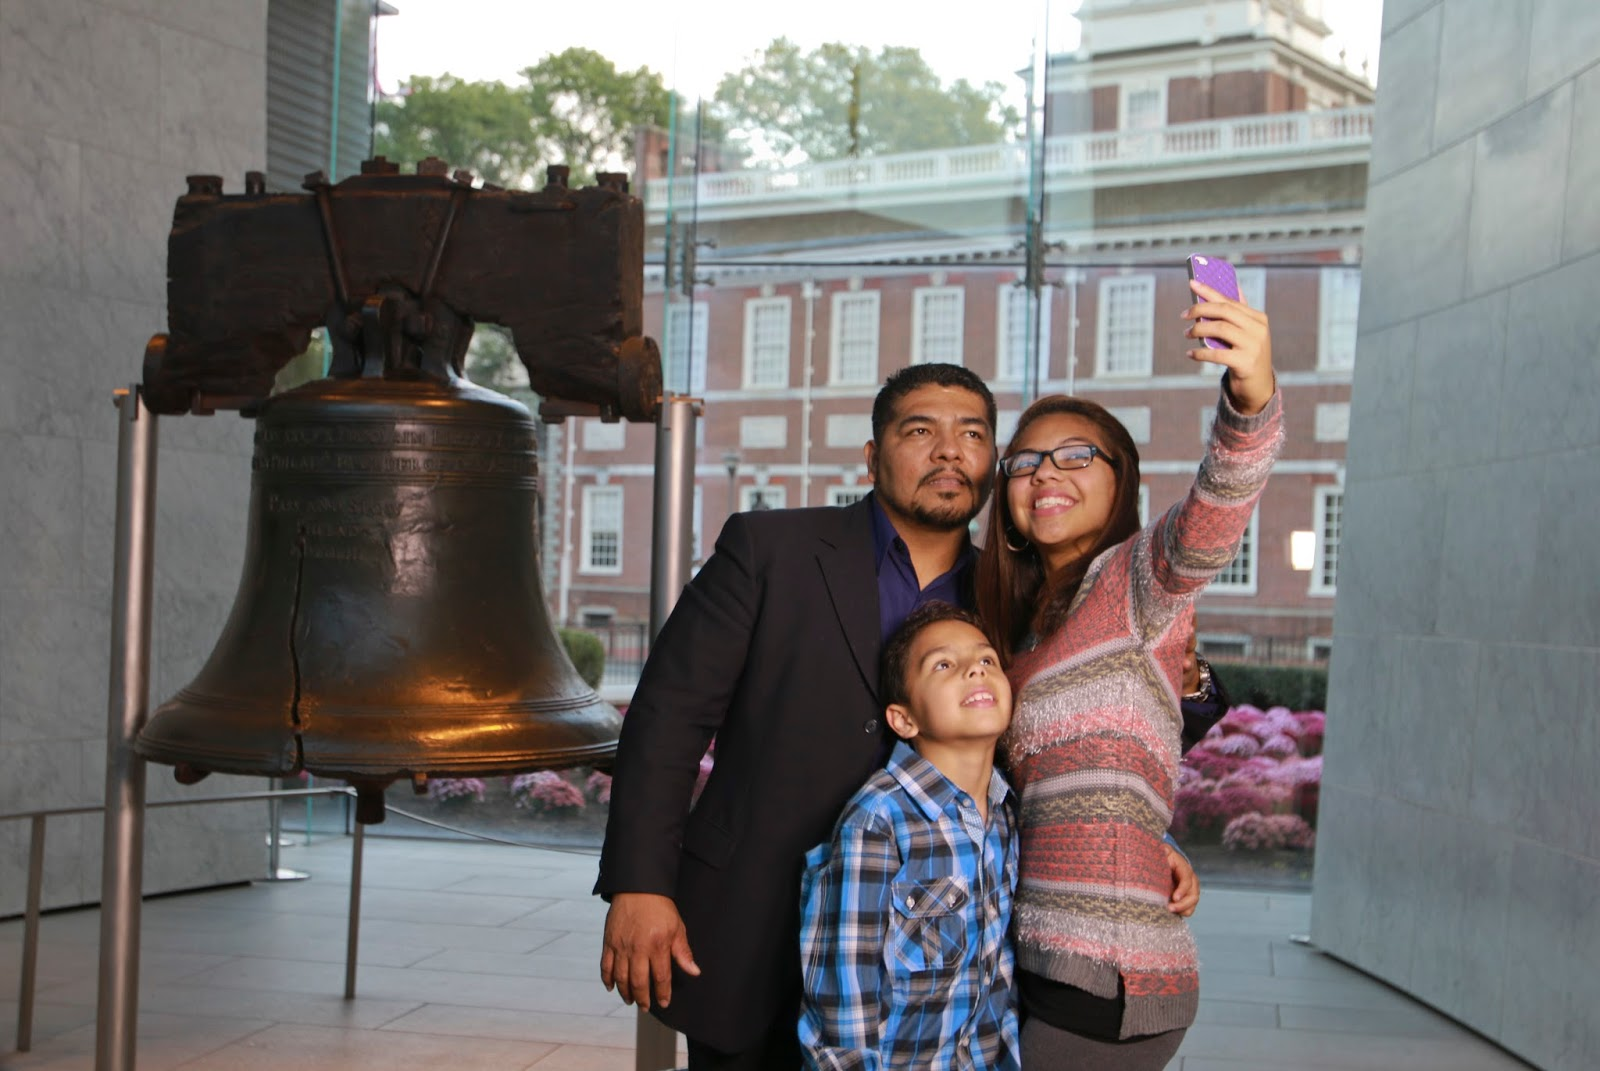 Visit Philly's New Americans Tour